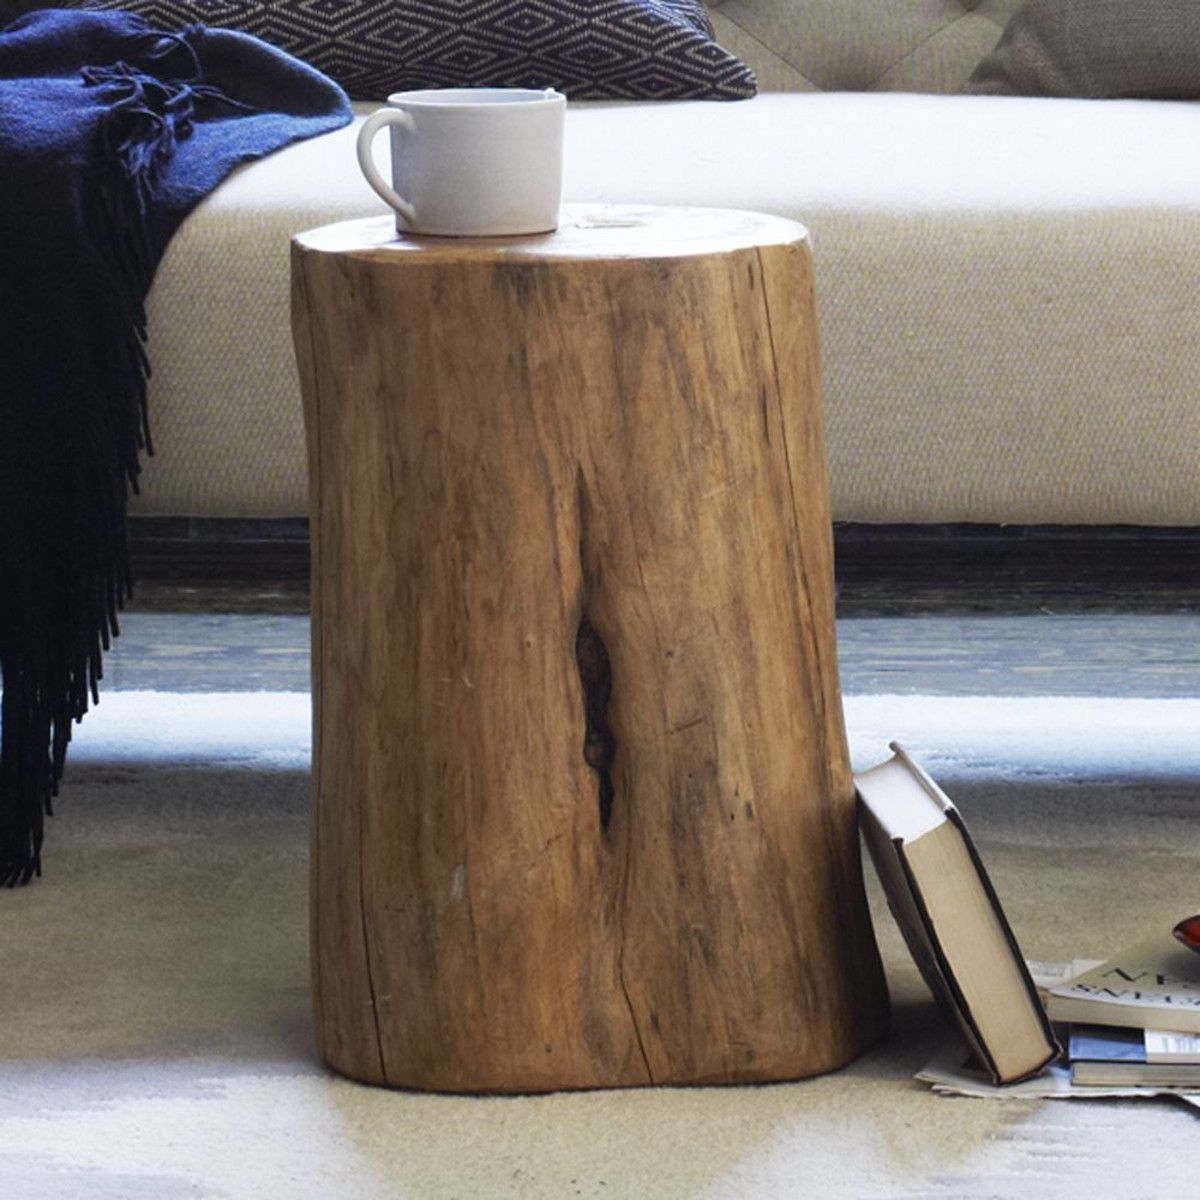 table protector mat the perfect cool wood stump end ideas natural tree side apartment lamps rattan garden hidden compartment target round plastic patio used woodworking tools